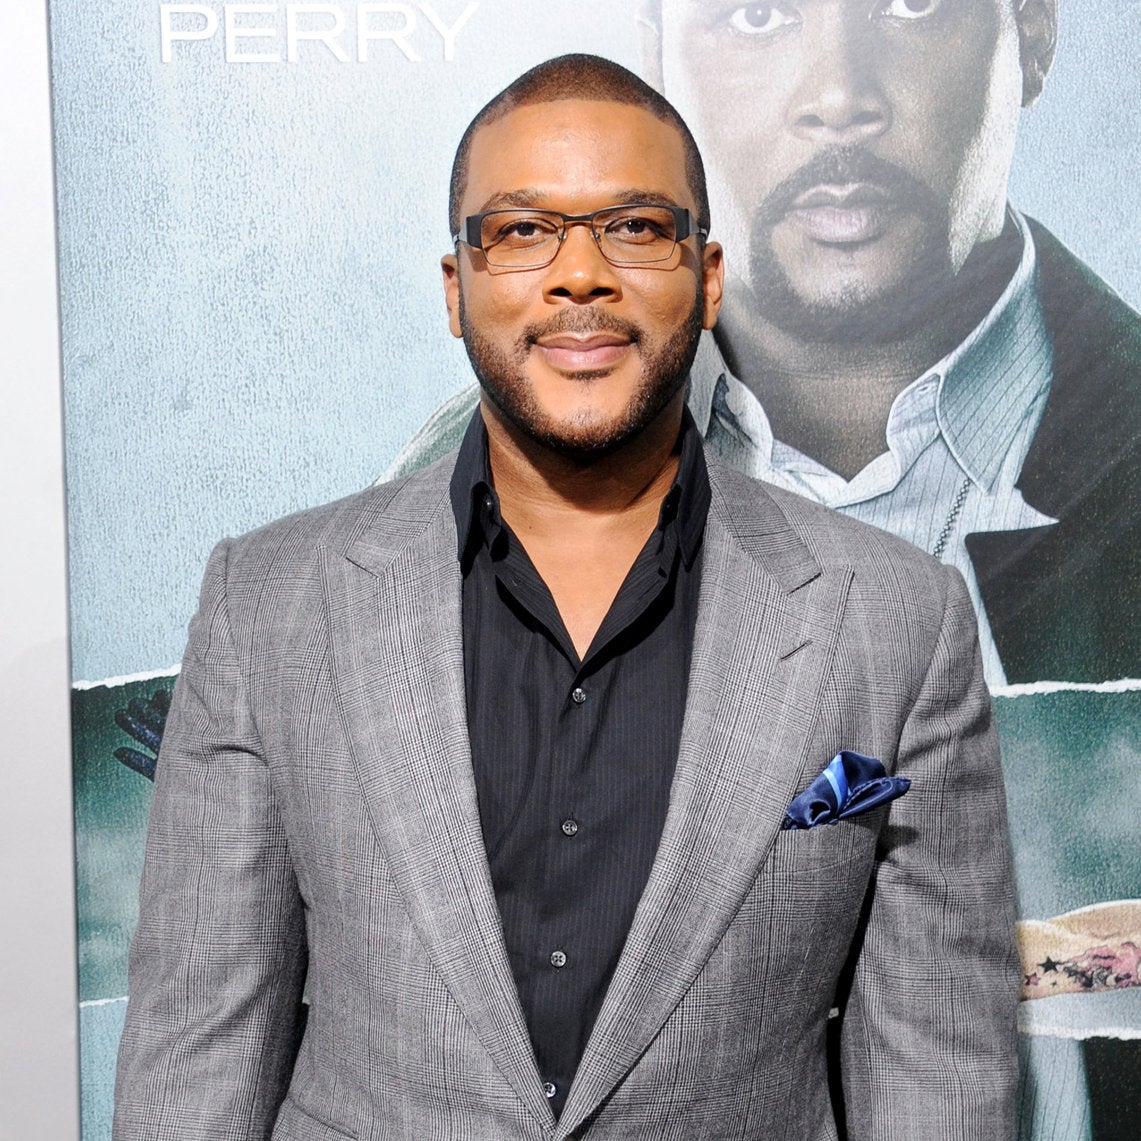 Must-See: Watch Trailer for Tyler Perry's 'Temptation: Confessions of a Marriage Counselor'